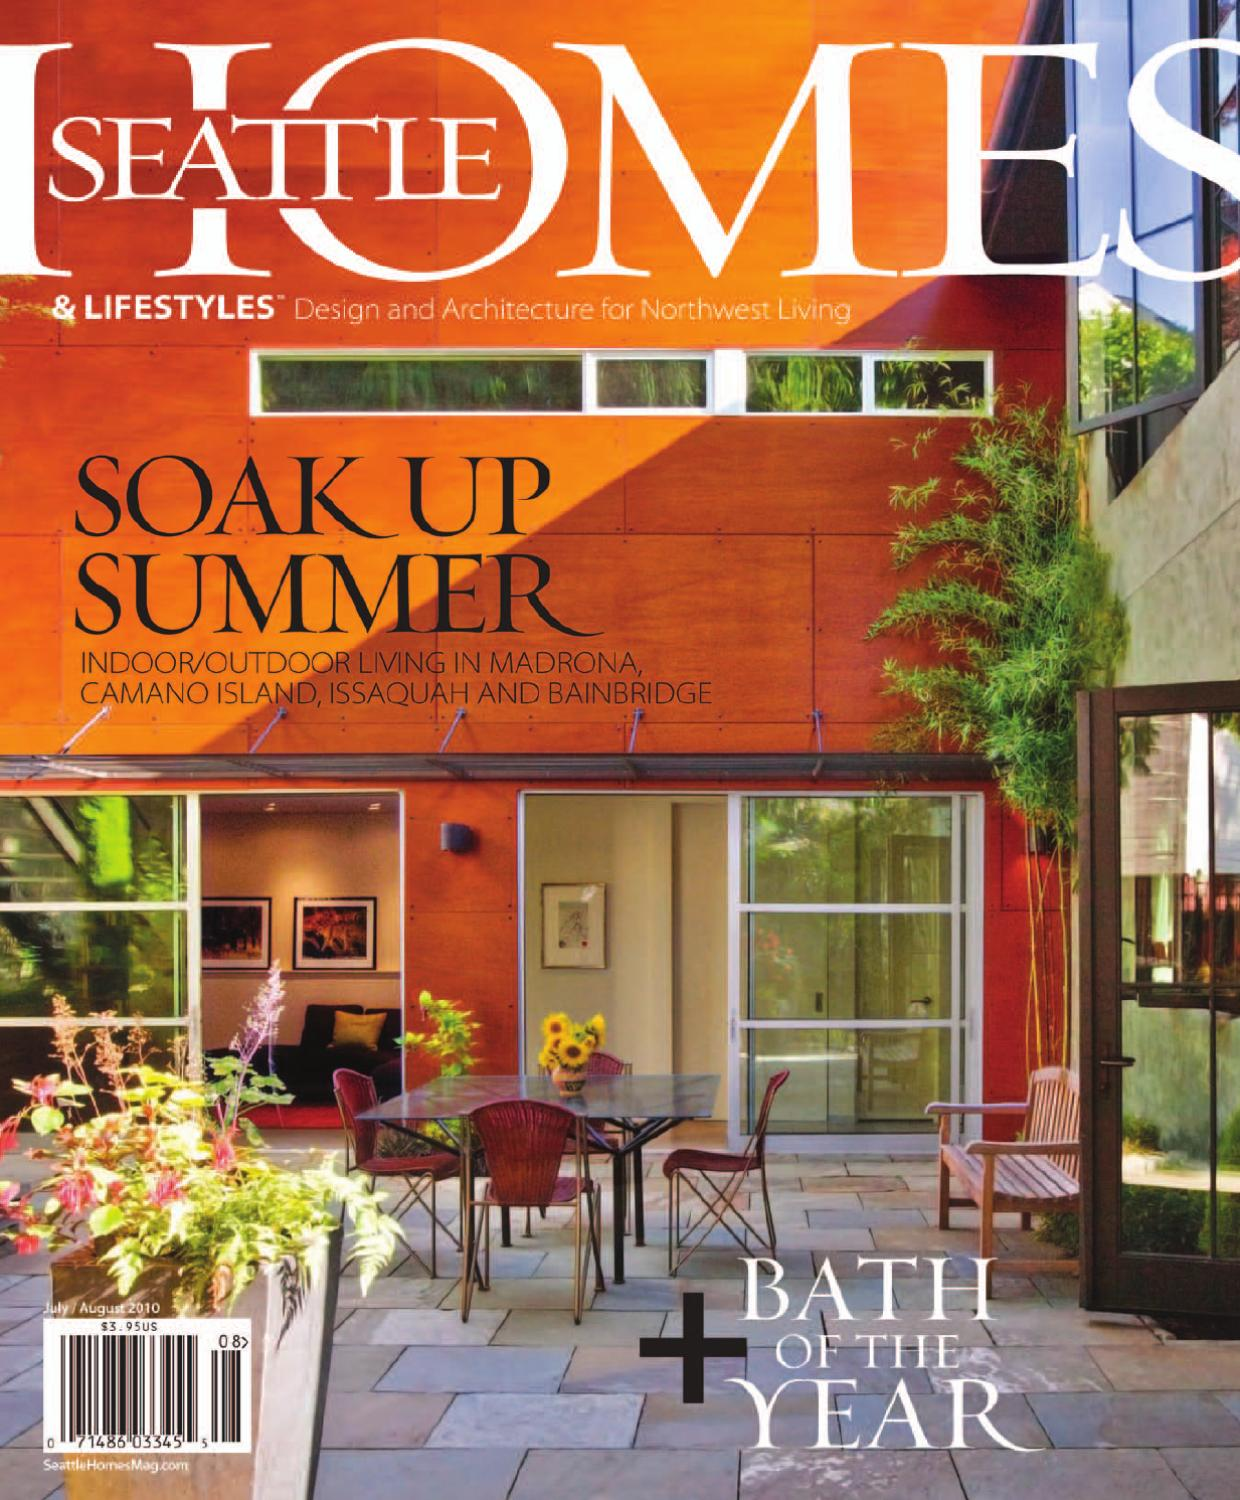 Seattle Homes & Lifestyles by Network Communications, Inc. - issuu on